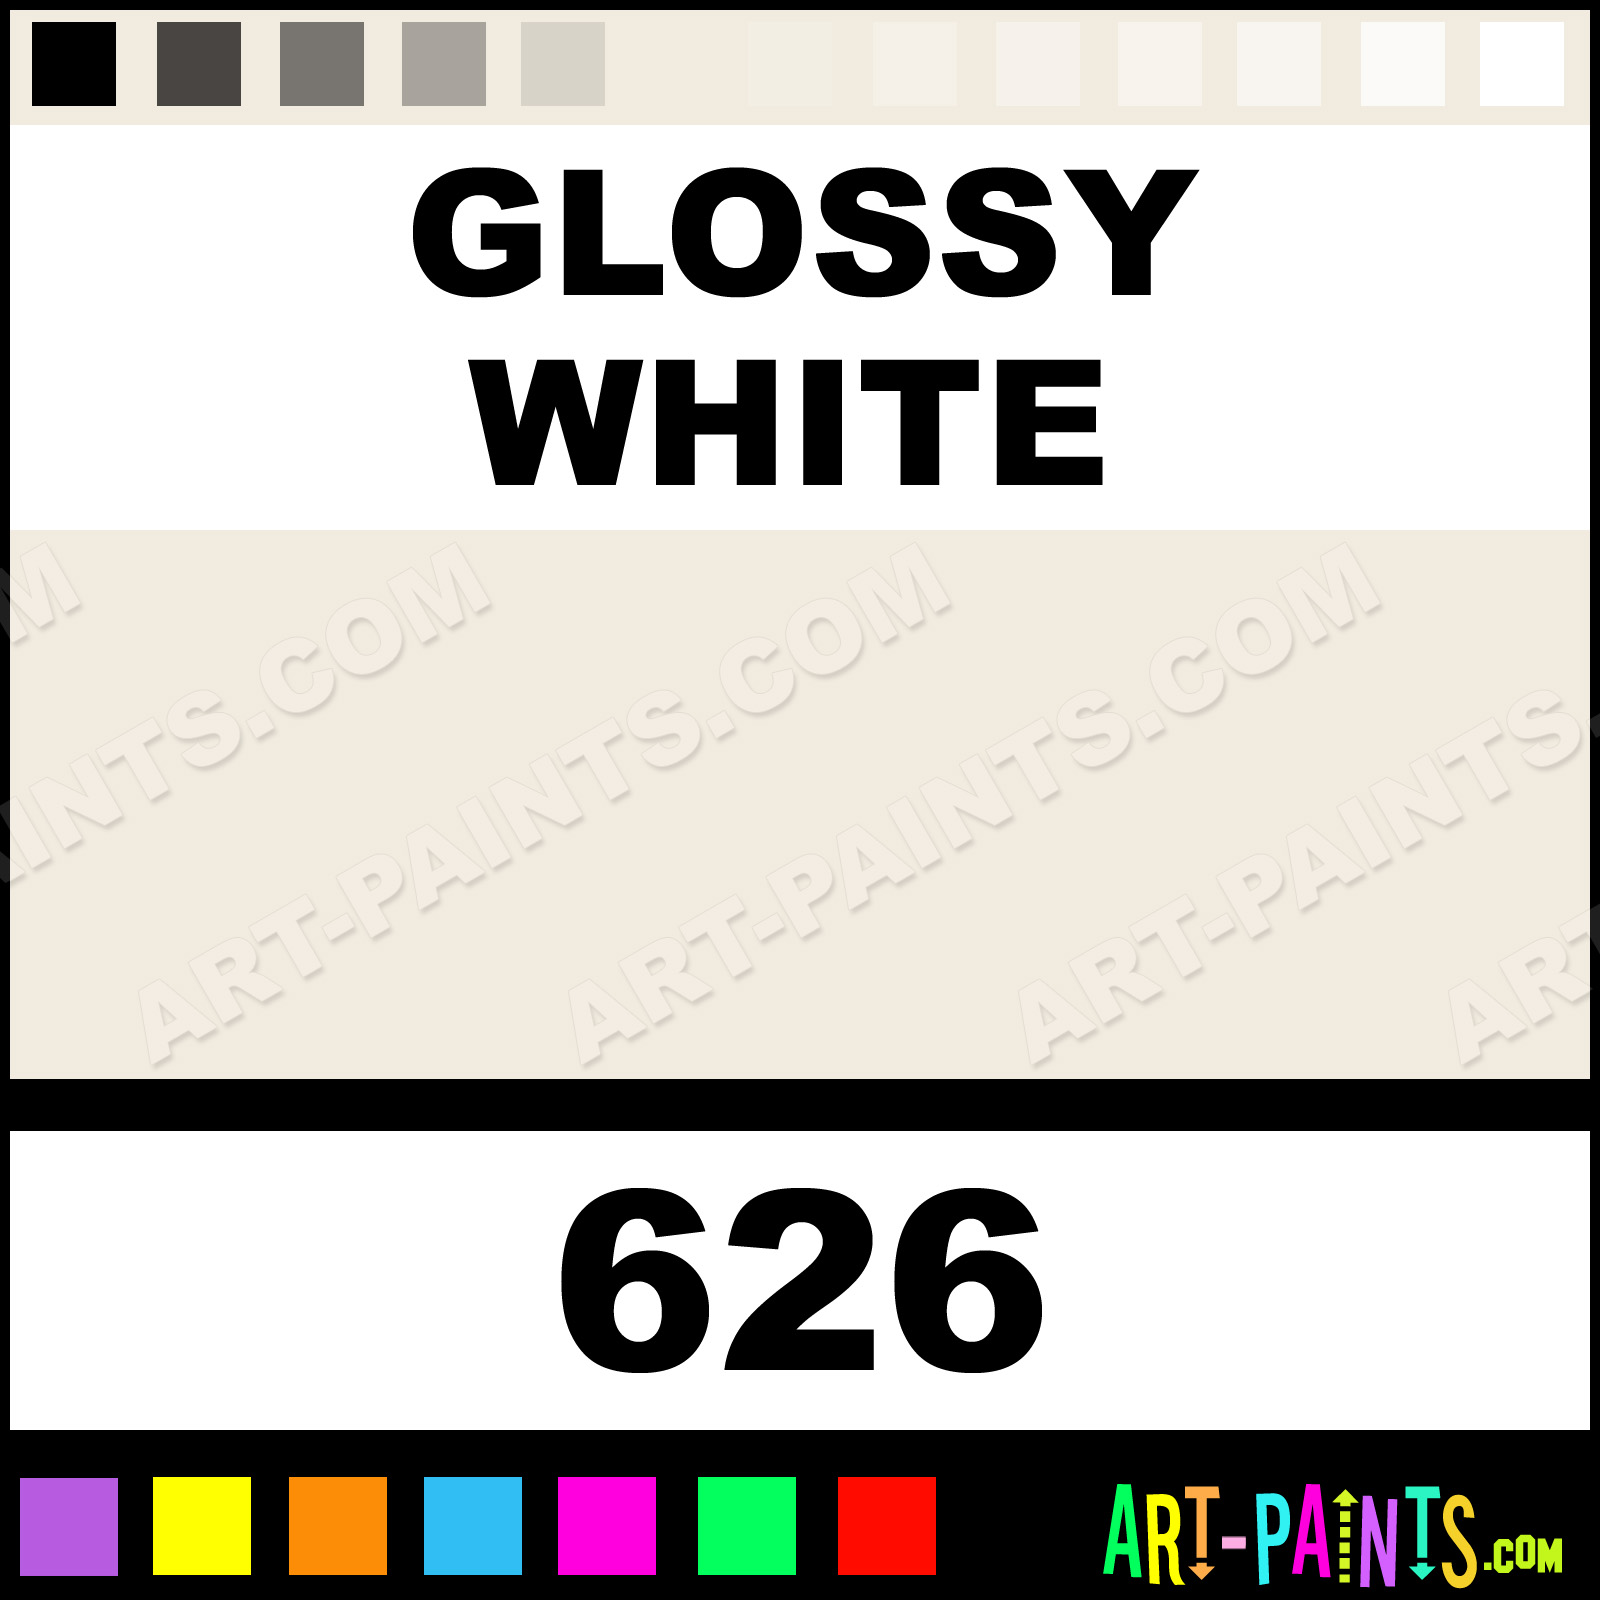 glossy white floral spray paints 626 glossy white